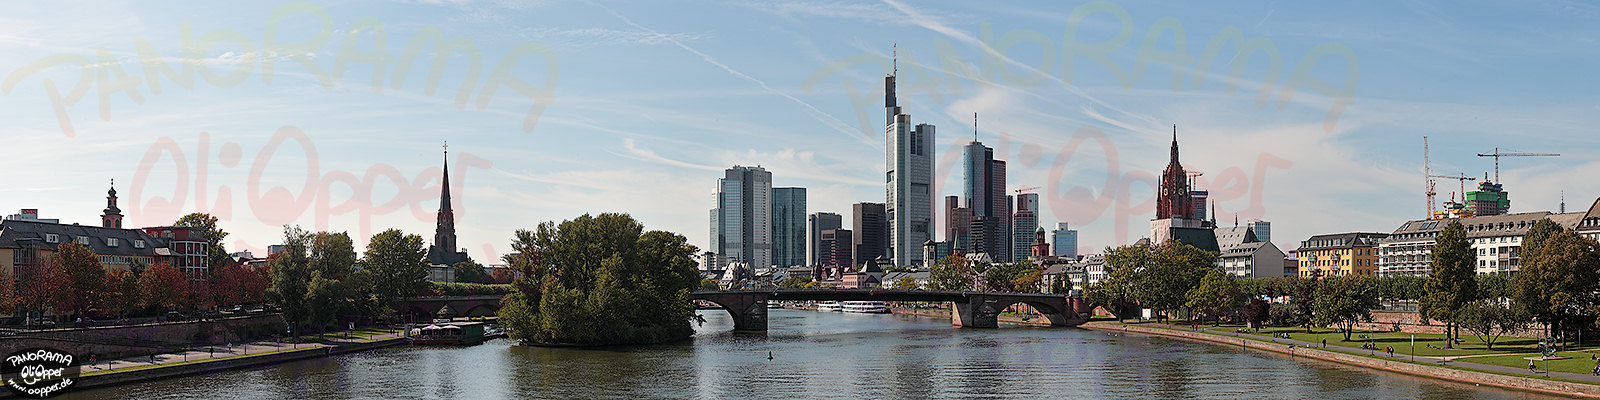 Panorama Frankfurt - Skyline am Tag - p298 - (c) by Oliver Opper